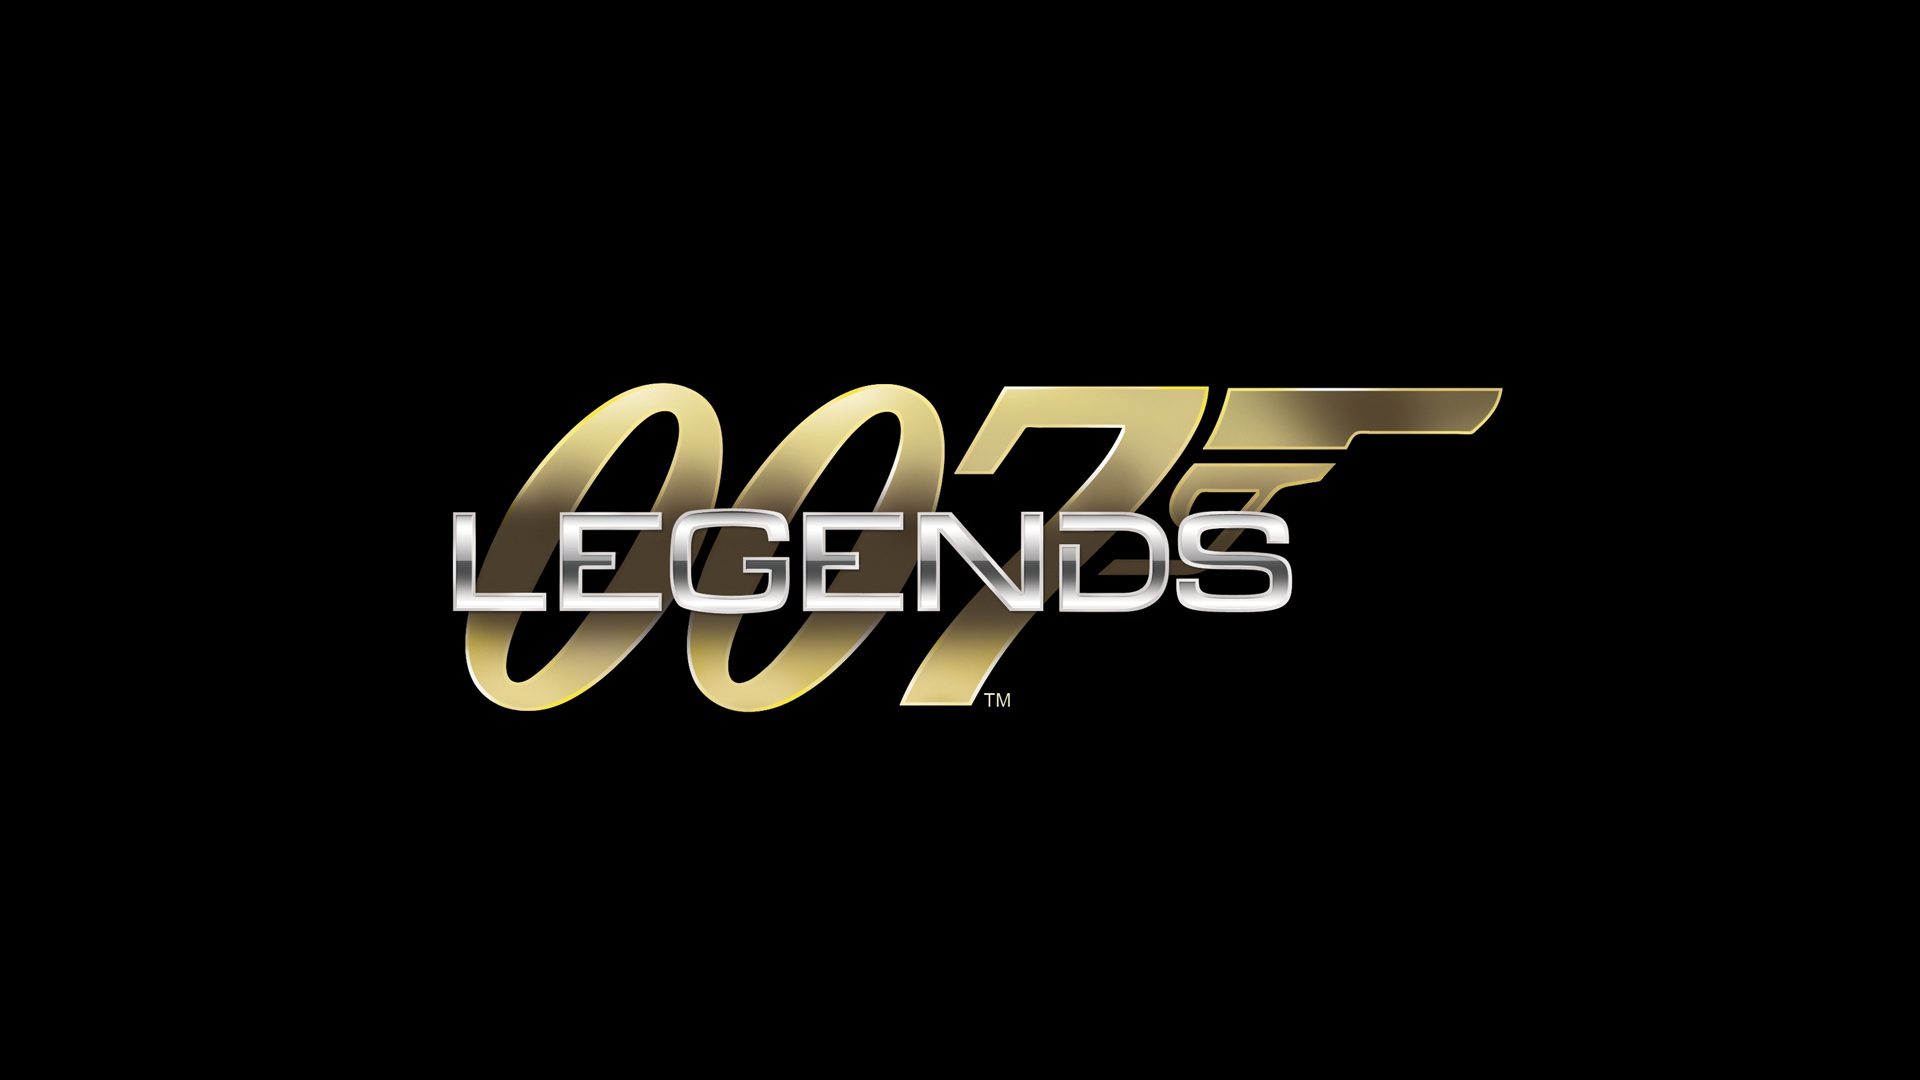 wallpapers of 007 Legends You are downloading 007 Legends wallpaper 1 1920x1080